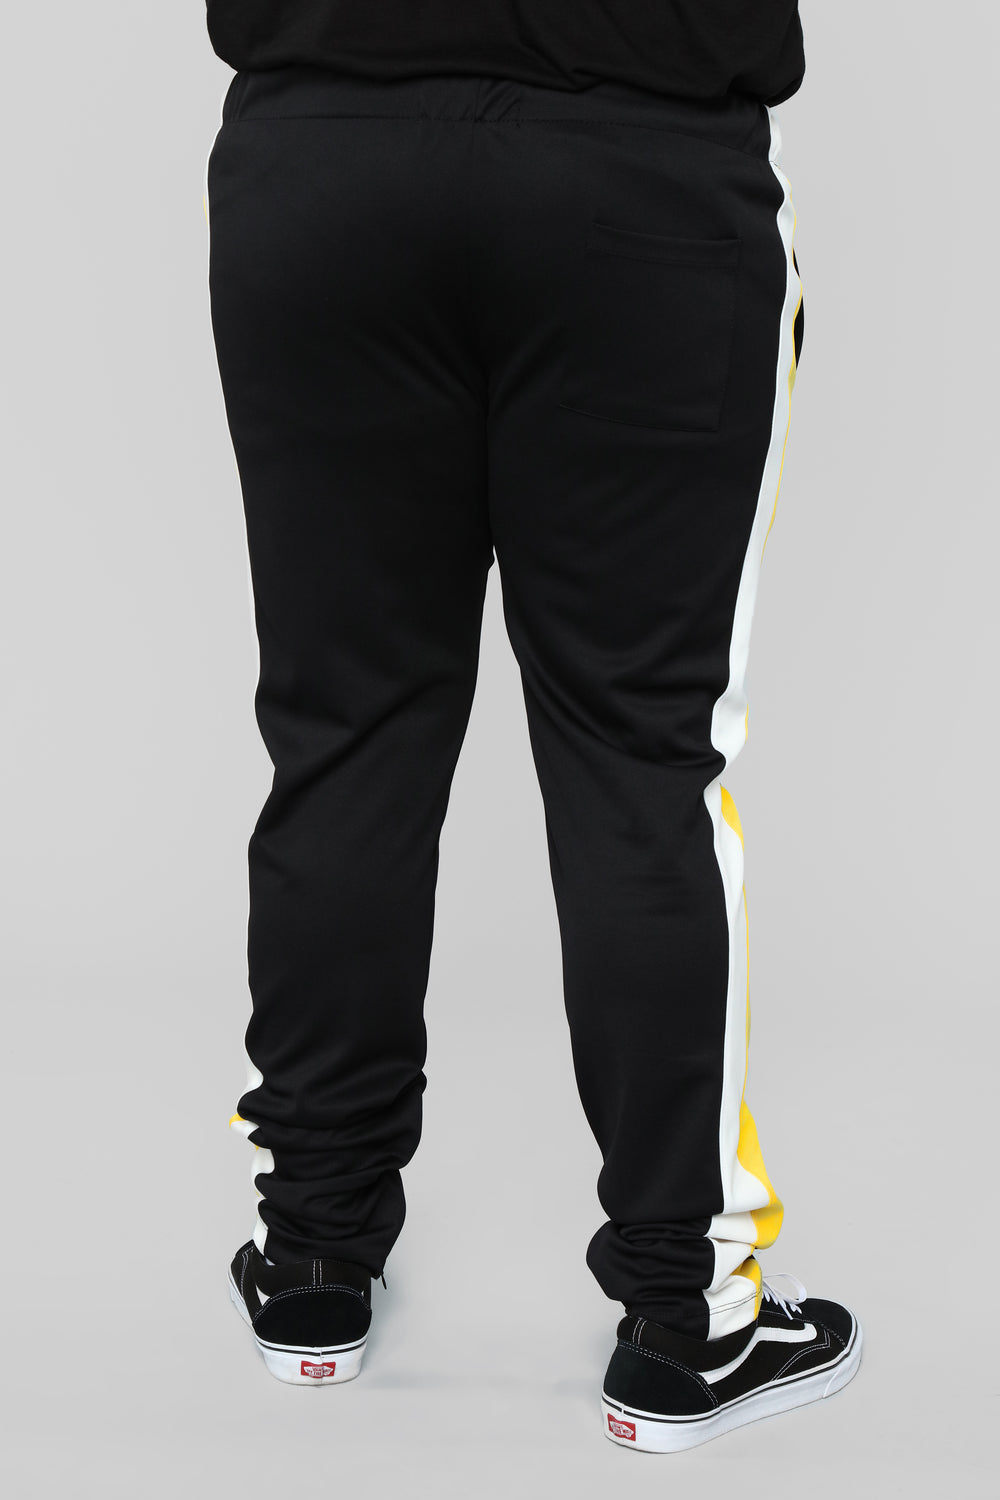 Retro V2 Track Pants - Black/Combo